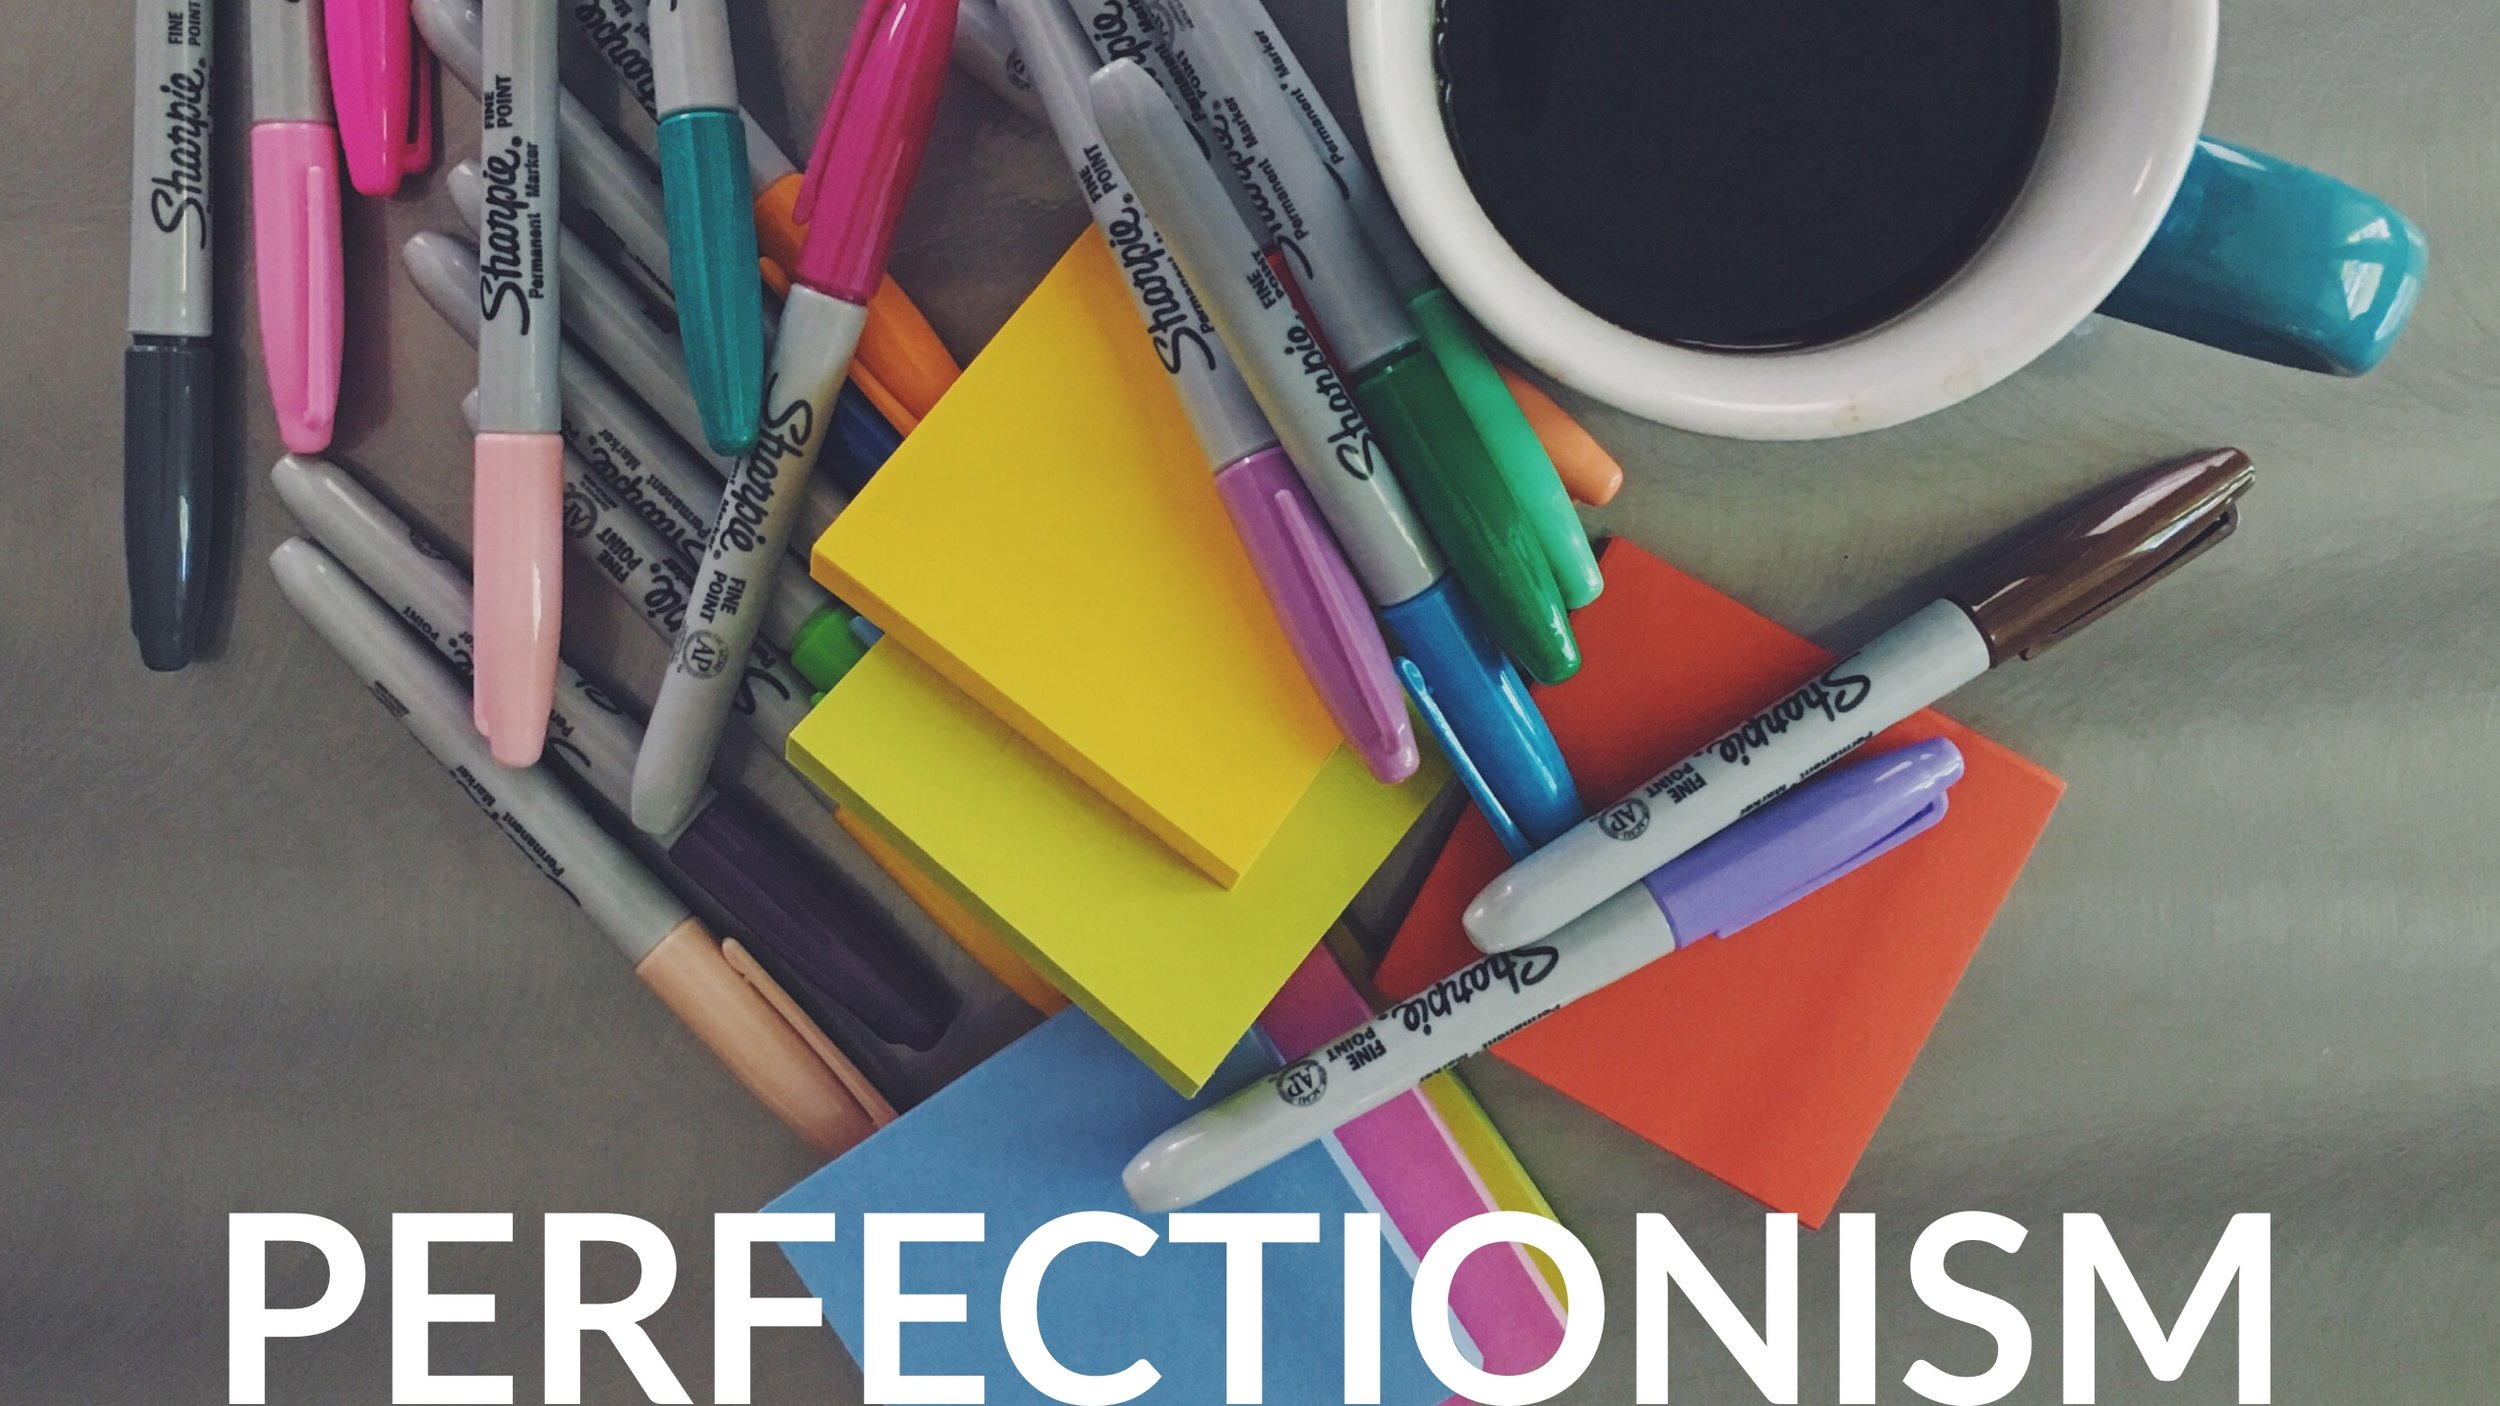 Repeat with me now, perfectionism doesn't exist!